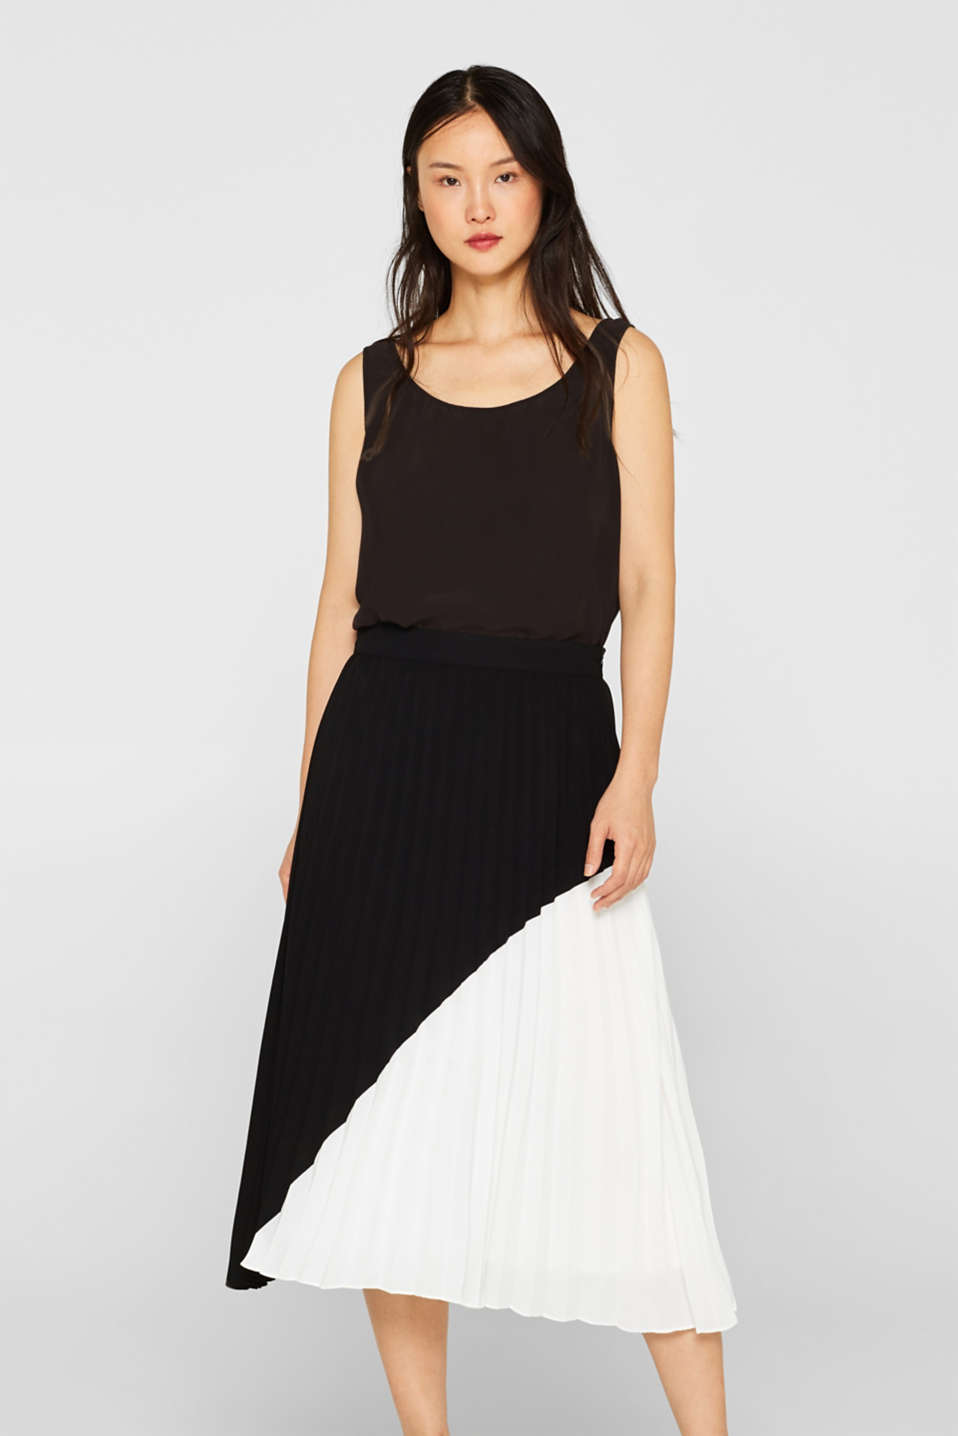 Esprit - Pleated skirt with a black and white colour block design